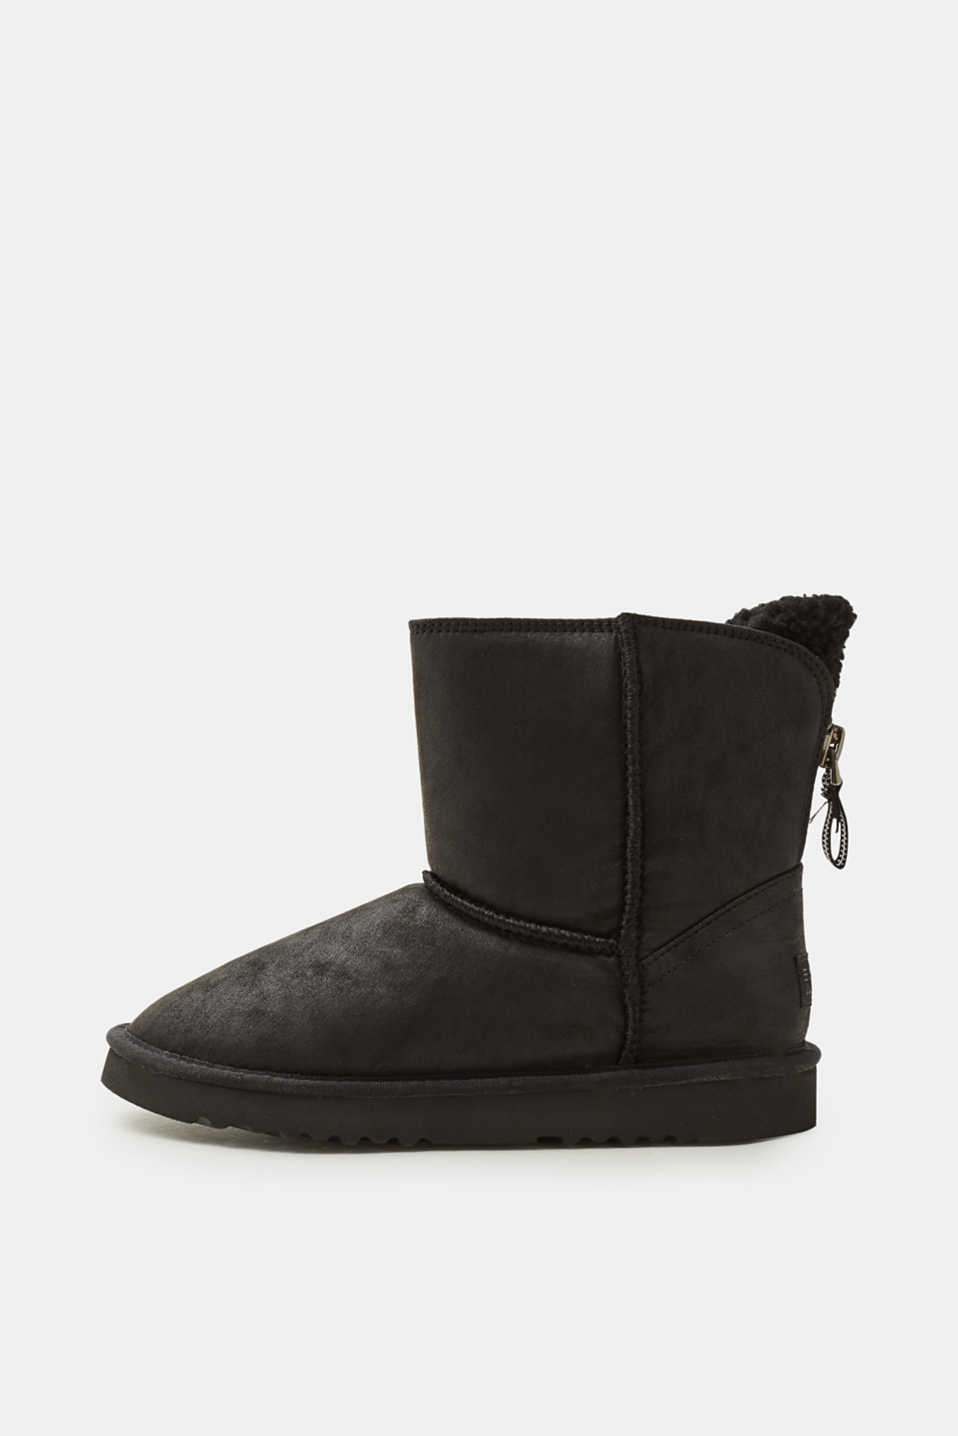 Esprit - Winter boots with teddy fur lining